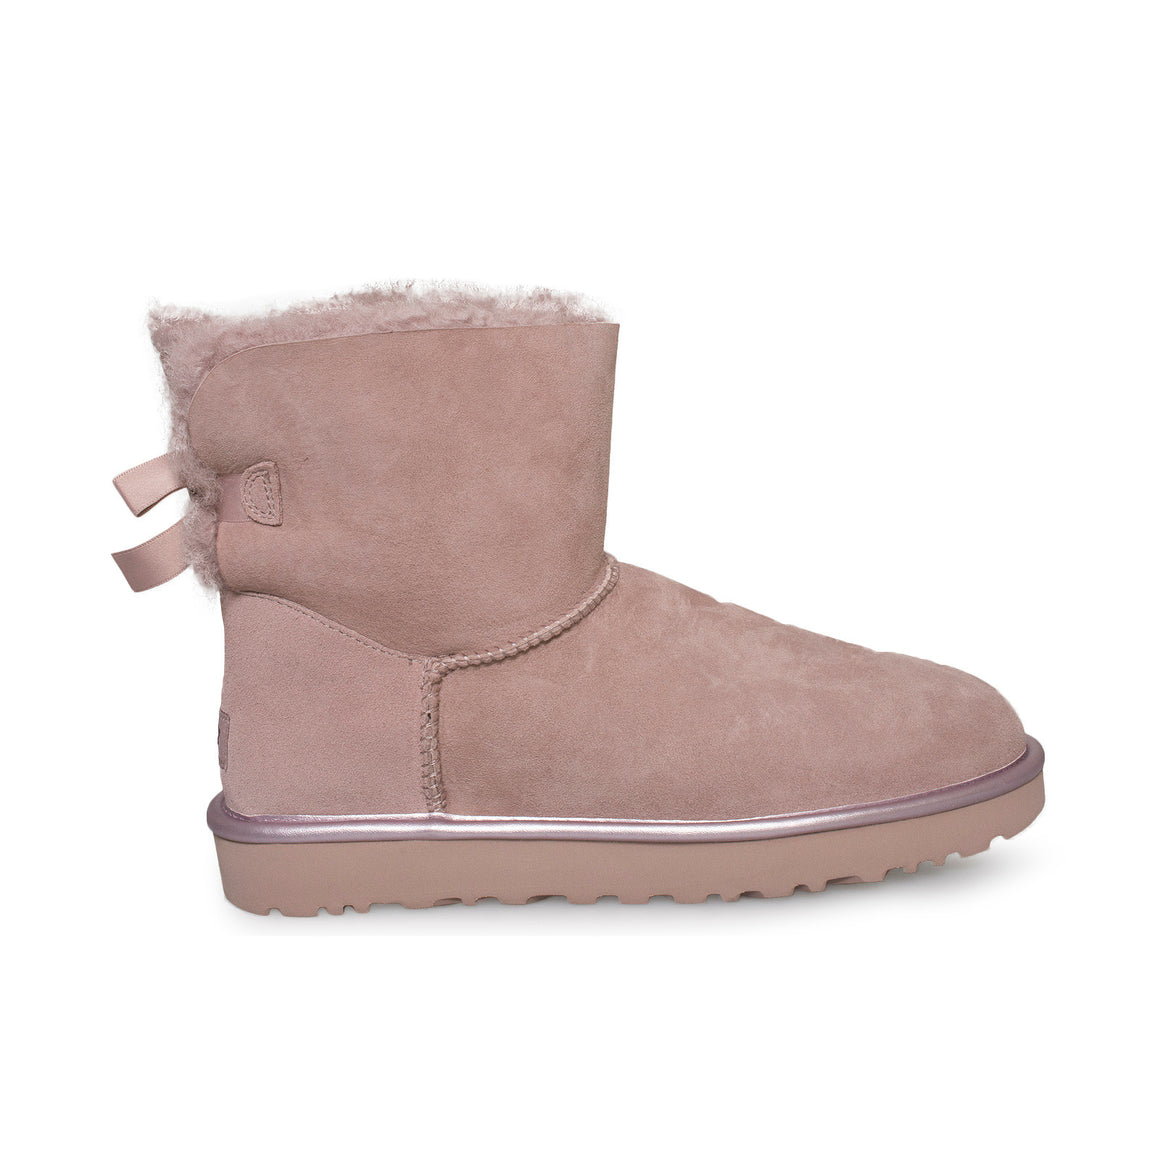 UGG Mini Bailey Bow II Metallic Dusk Boots